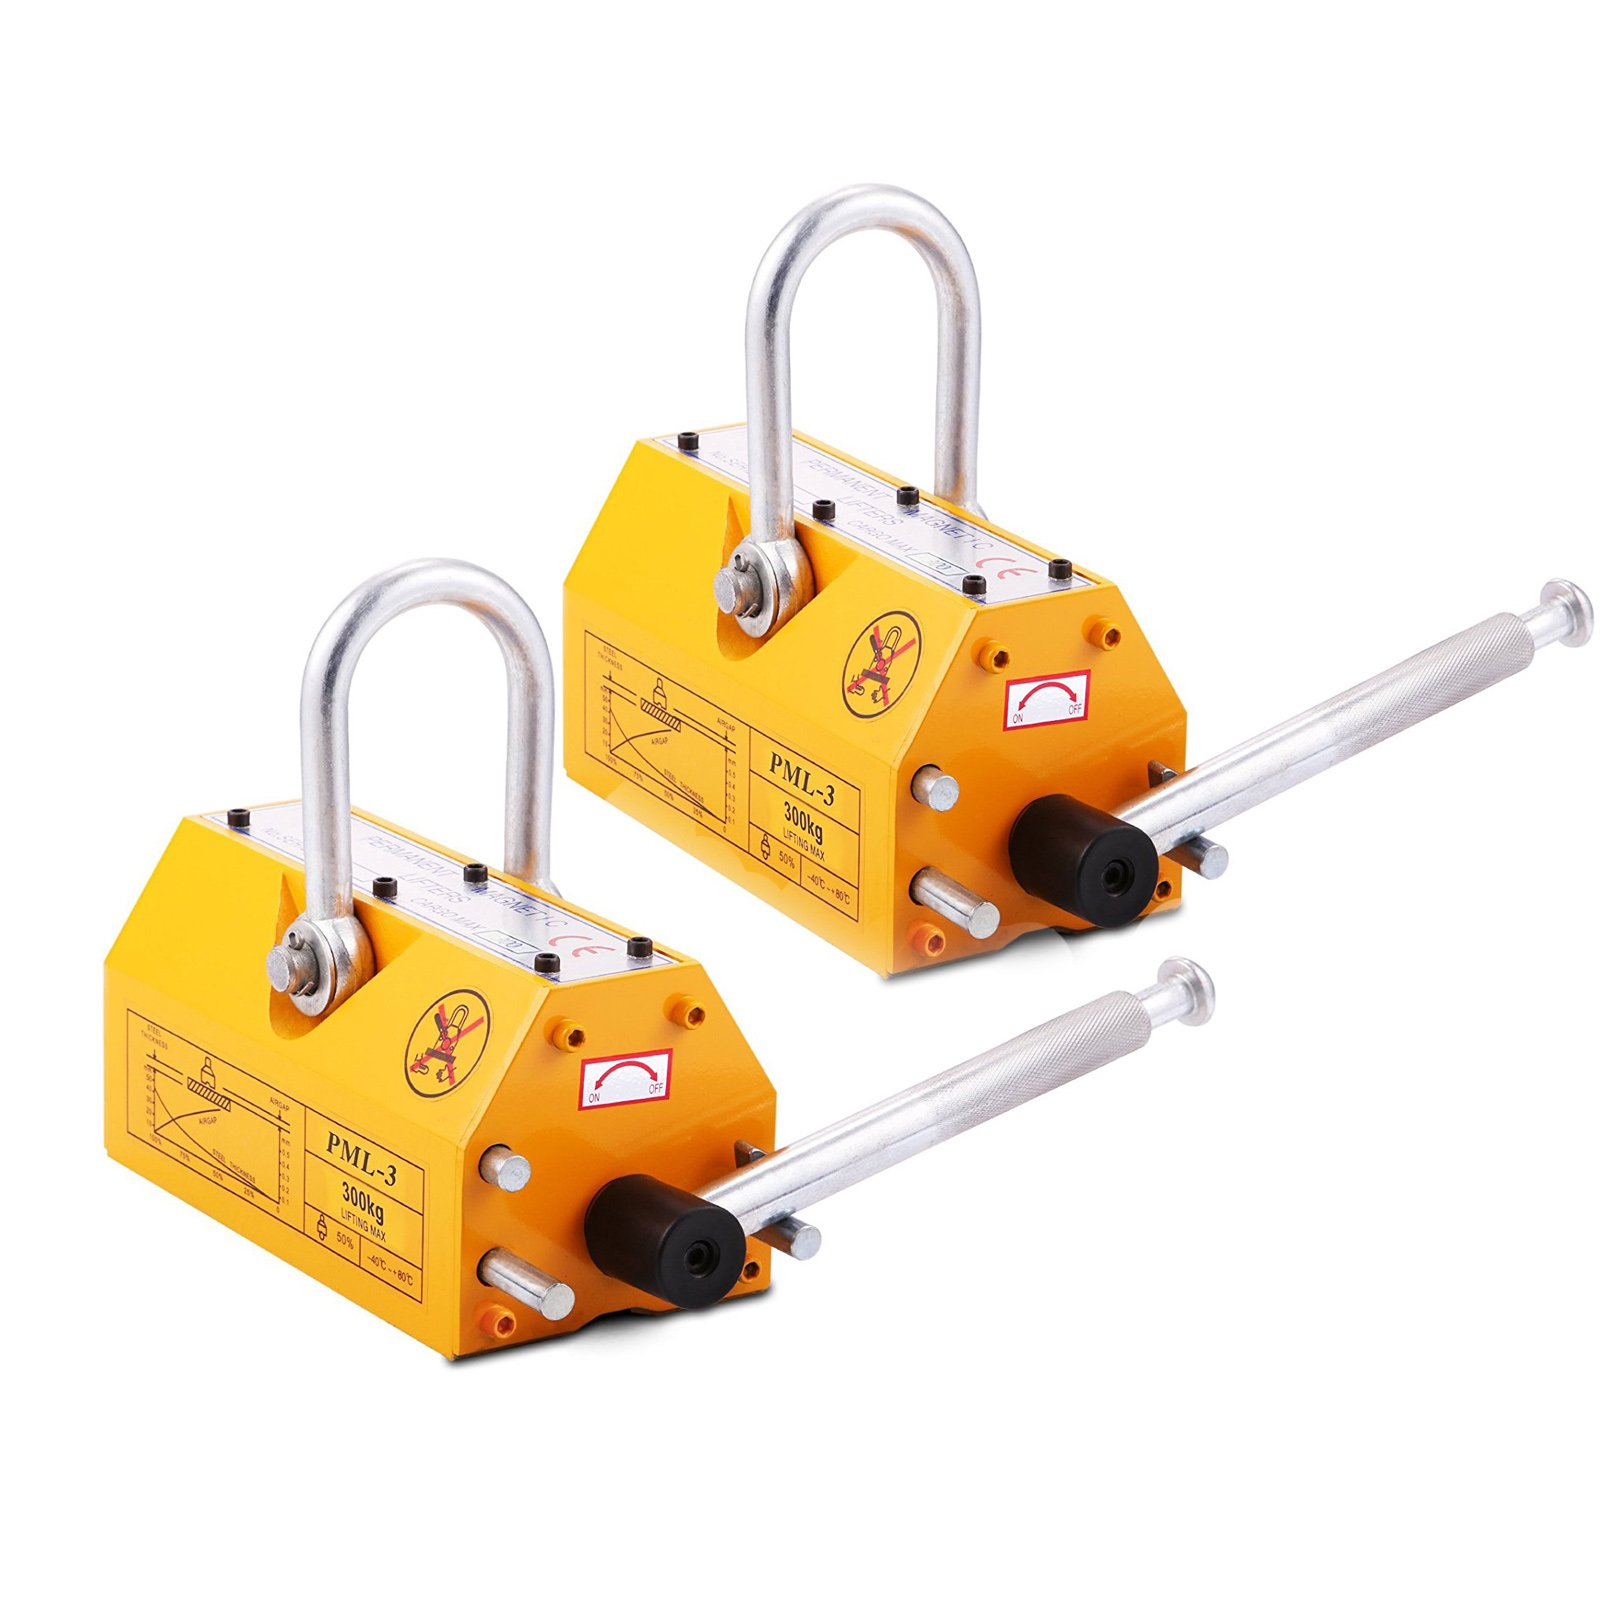 VEVOR 2PCS Steel Magnetic Lifter 660 LB Metal Lifting Magnet 300 KG 2PCS Neodymium Magnetic Lift Hoist Shop Crane (2PC)